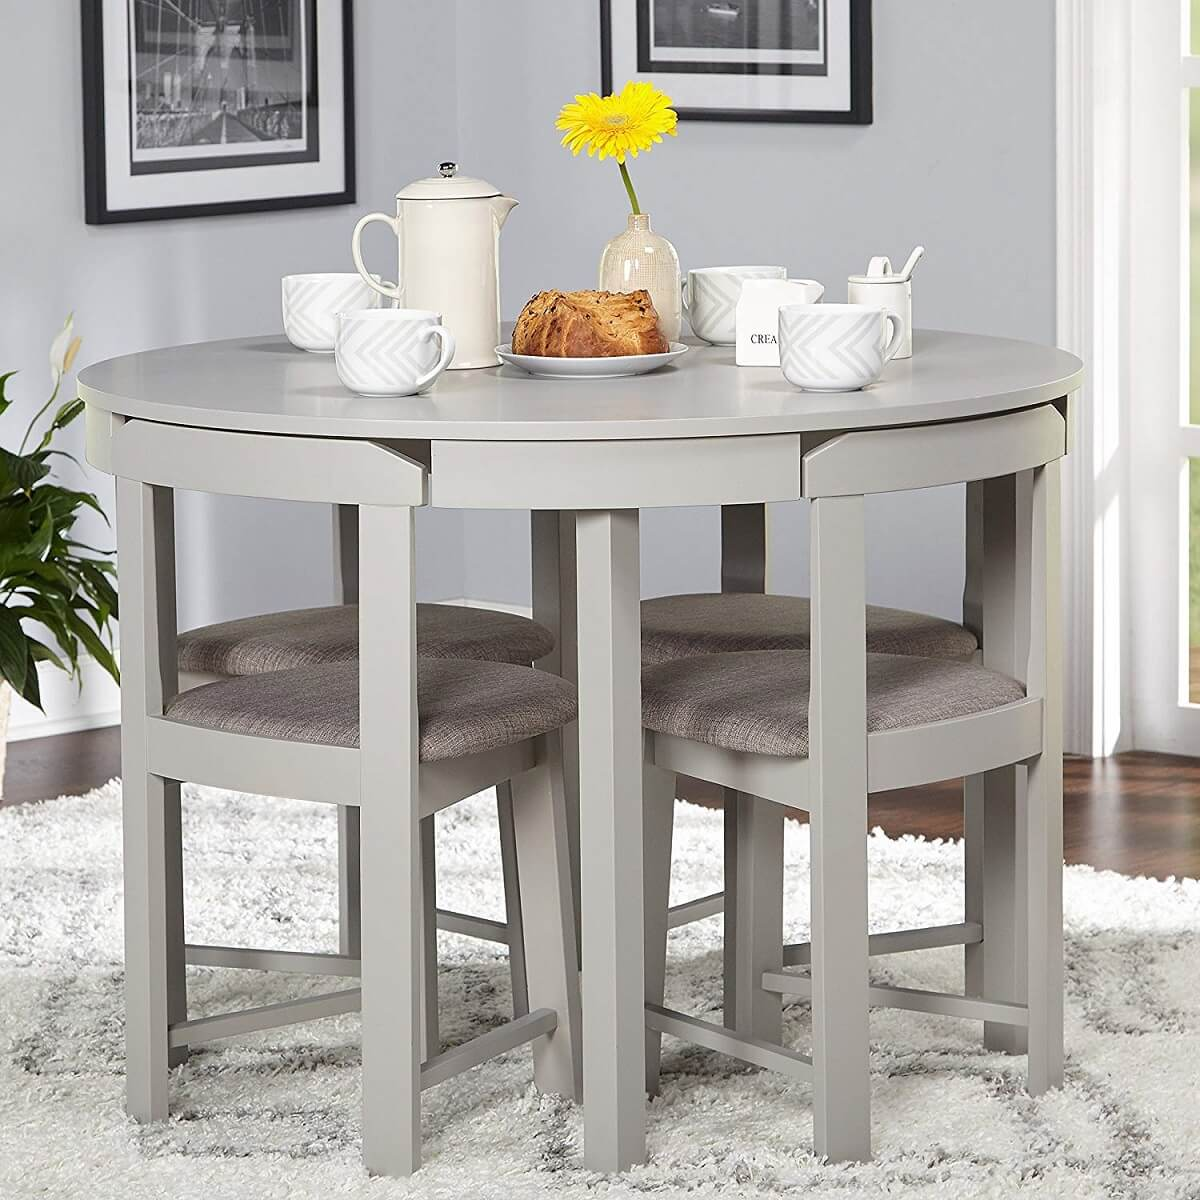 19 Small Kitchen Tables For Conserving Space Insteading